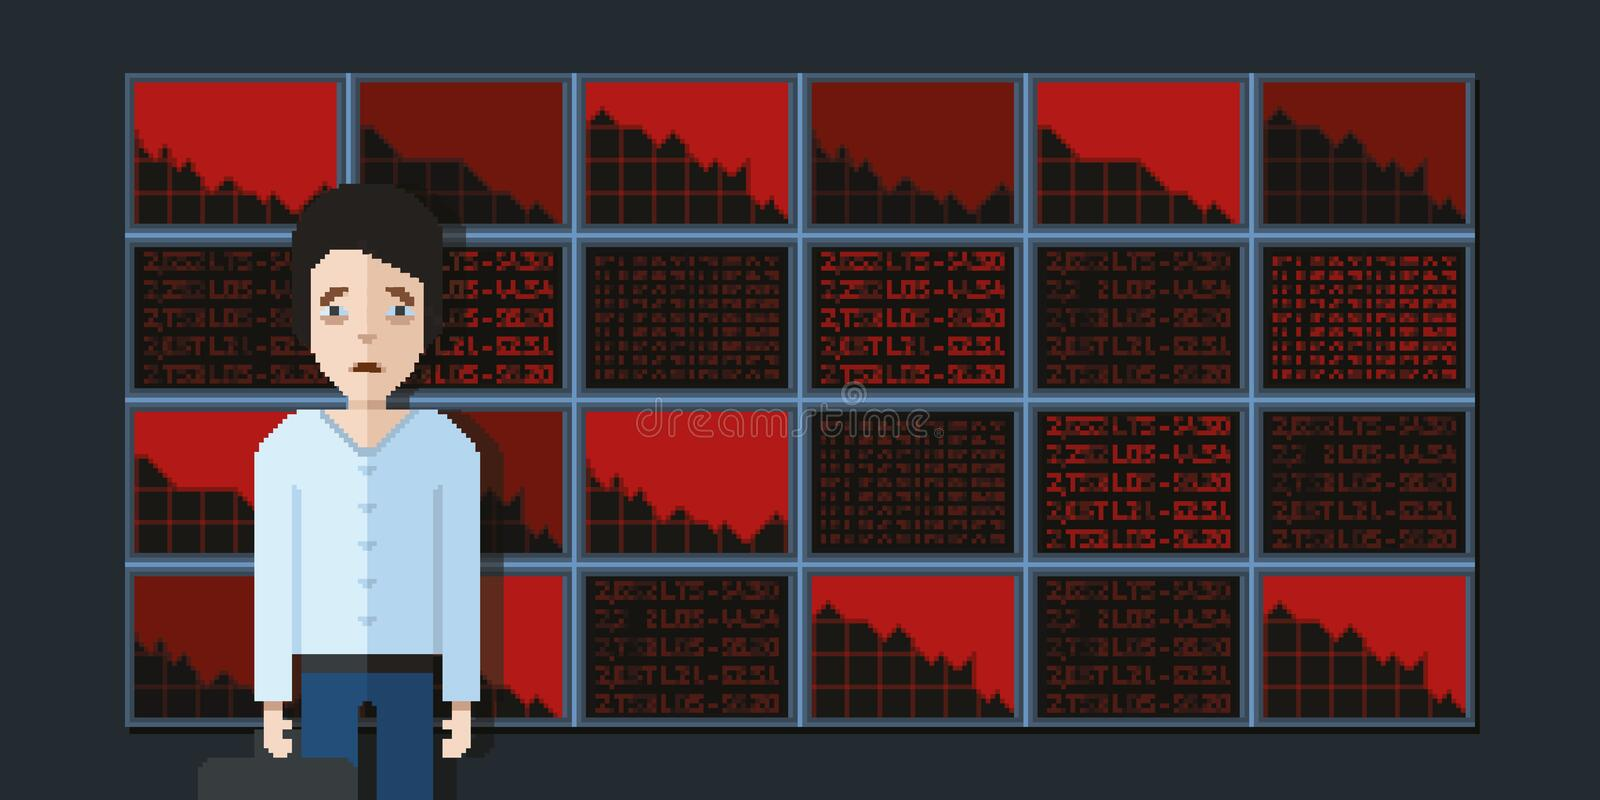 Sad broker on stock exchange background, pixel art video game style illustration royalty free stock photography